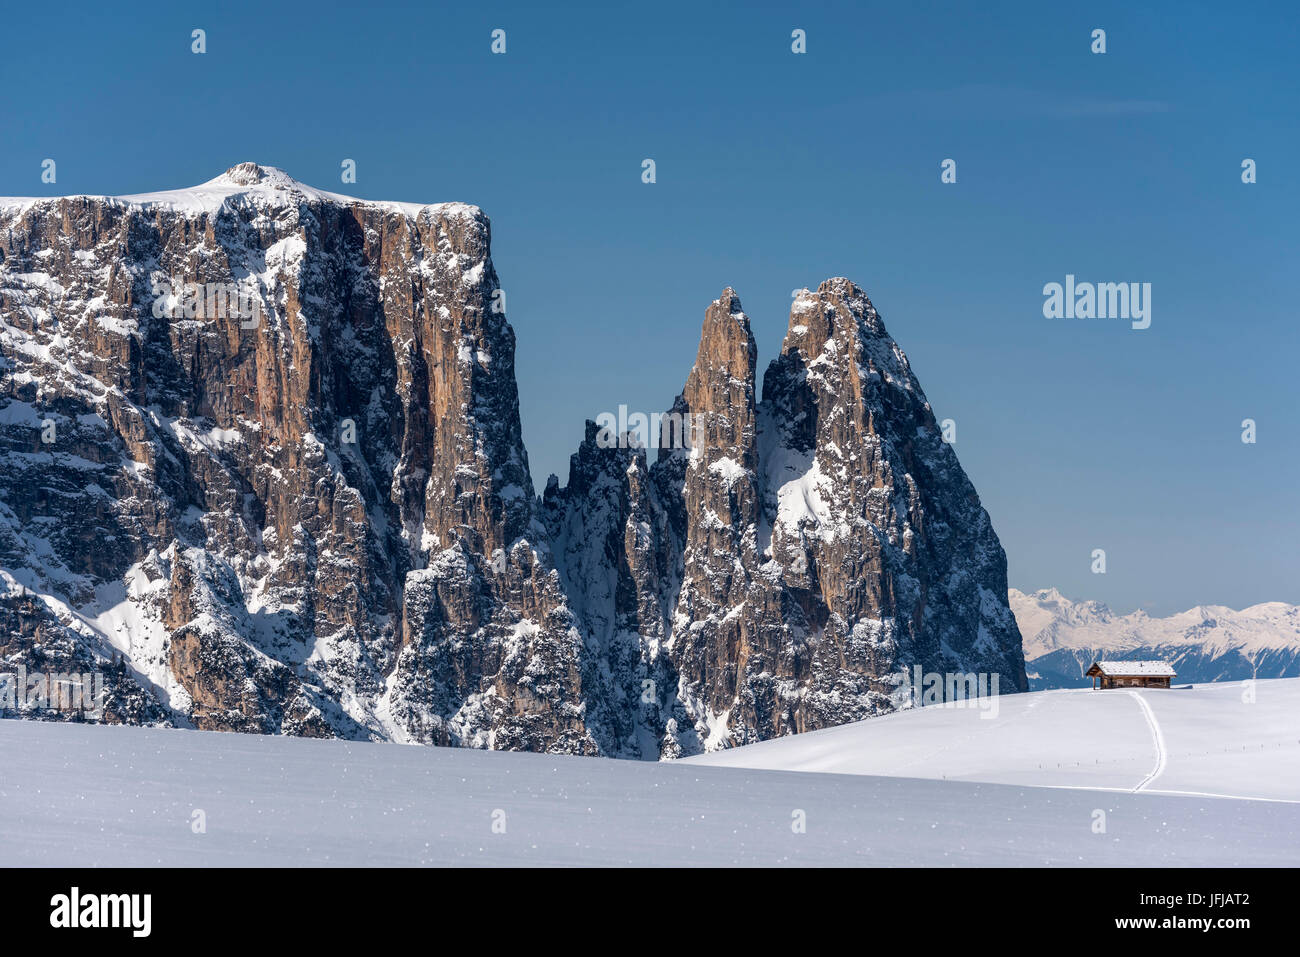 Alpe di Siusi/Seiser Alm, Dolomites, South Tyrol, Italy, Winter landscape on the Alpe di Siusi/Seiser Alm with the Stock Photo